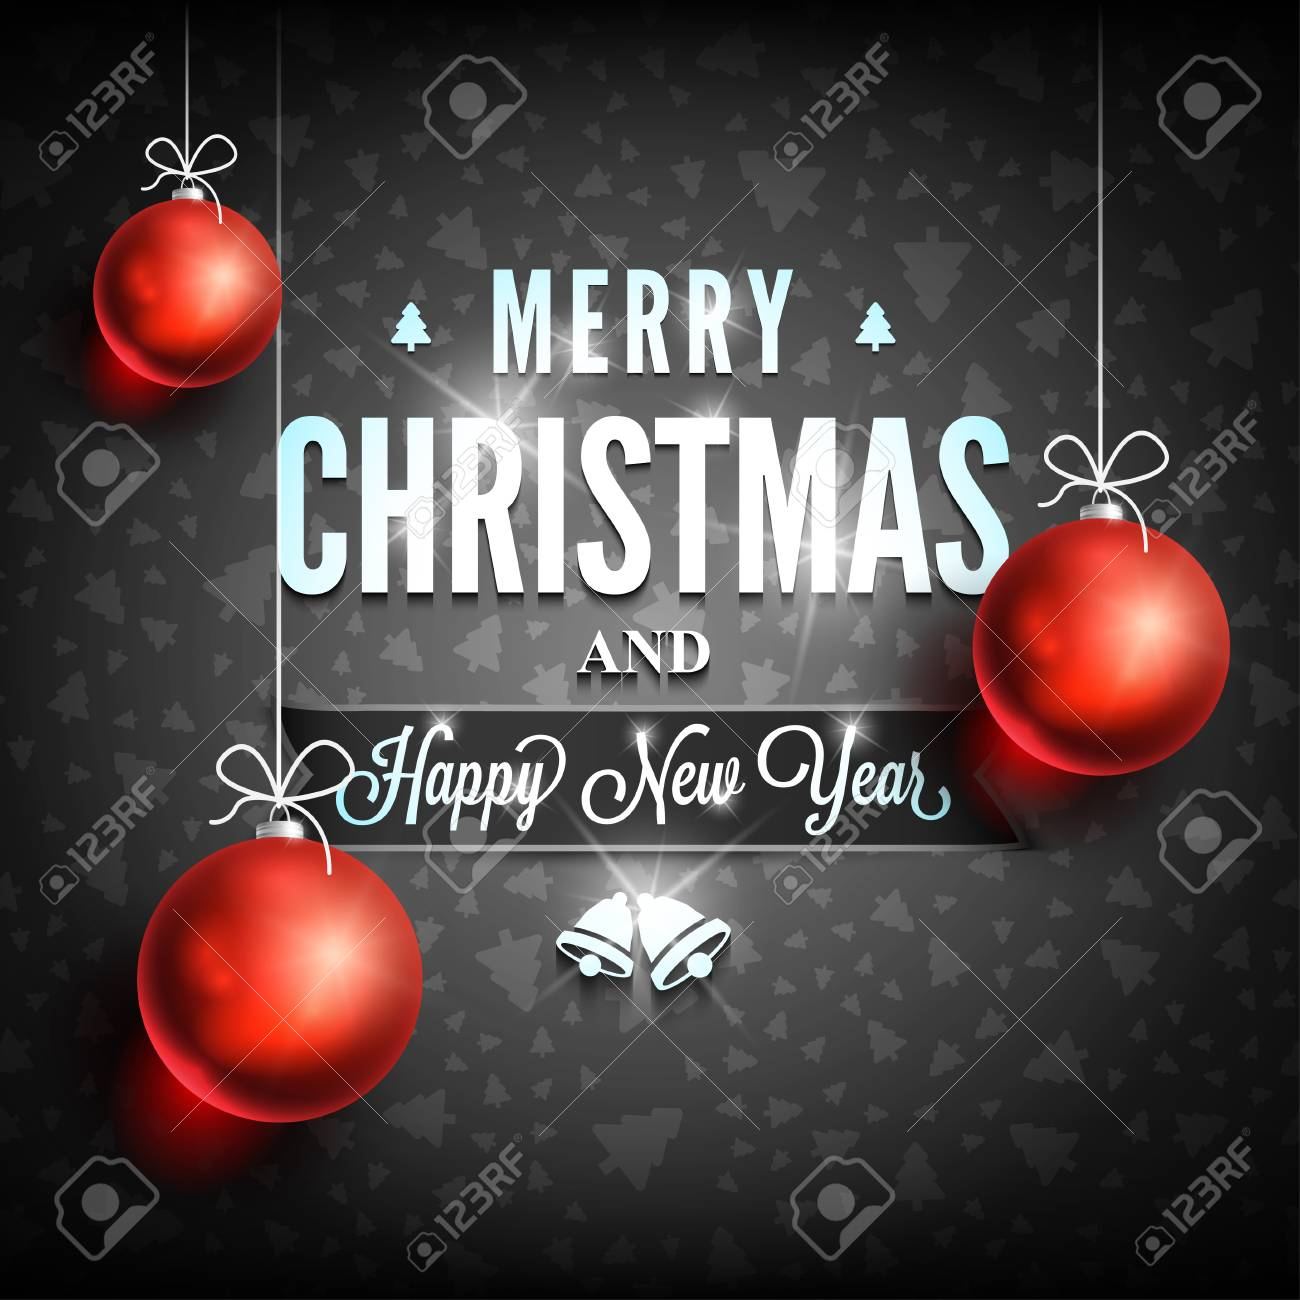 Merry Christmas And Happy New Year Message On Dark Background